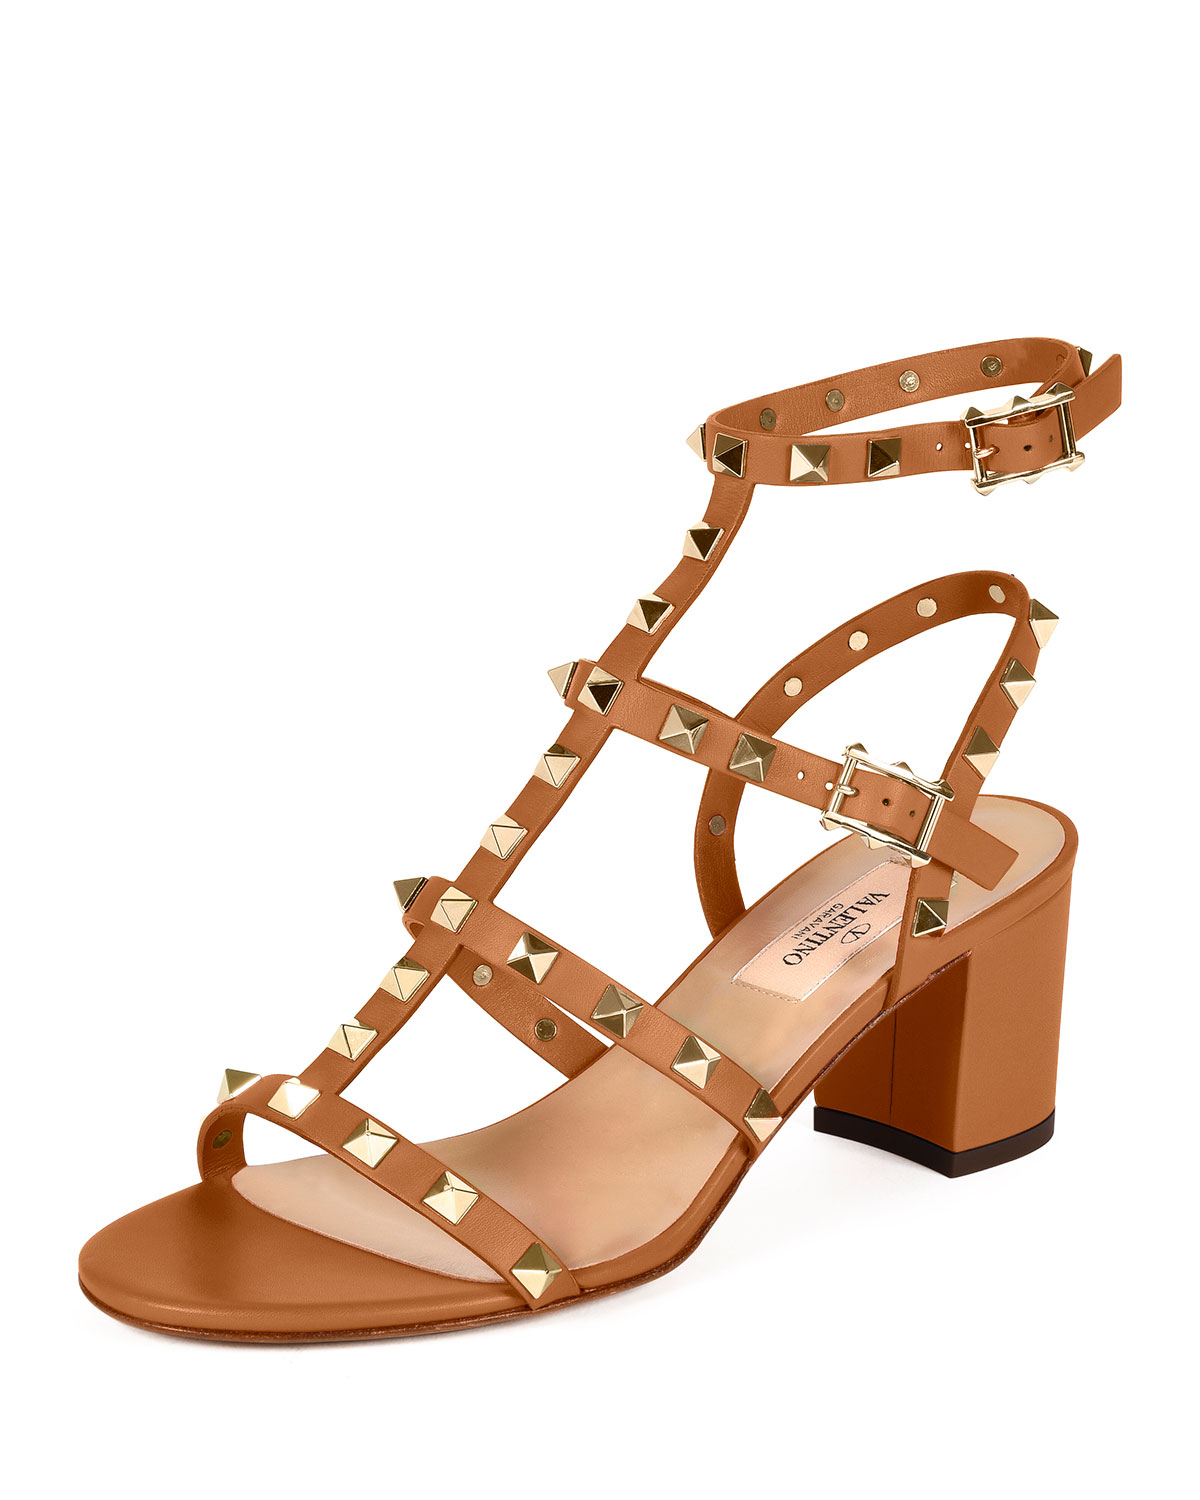 Rockstud Leather City Sandal, Light Cuir, Size: 35.0B/5.0B, Lt Cuir - Valentino